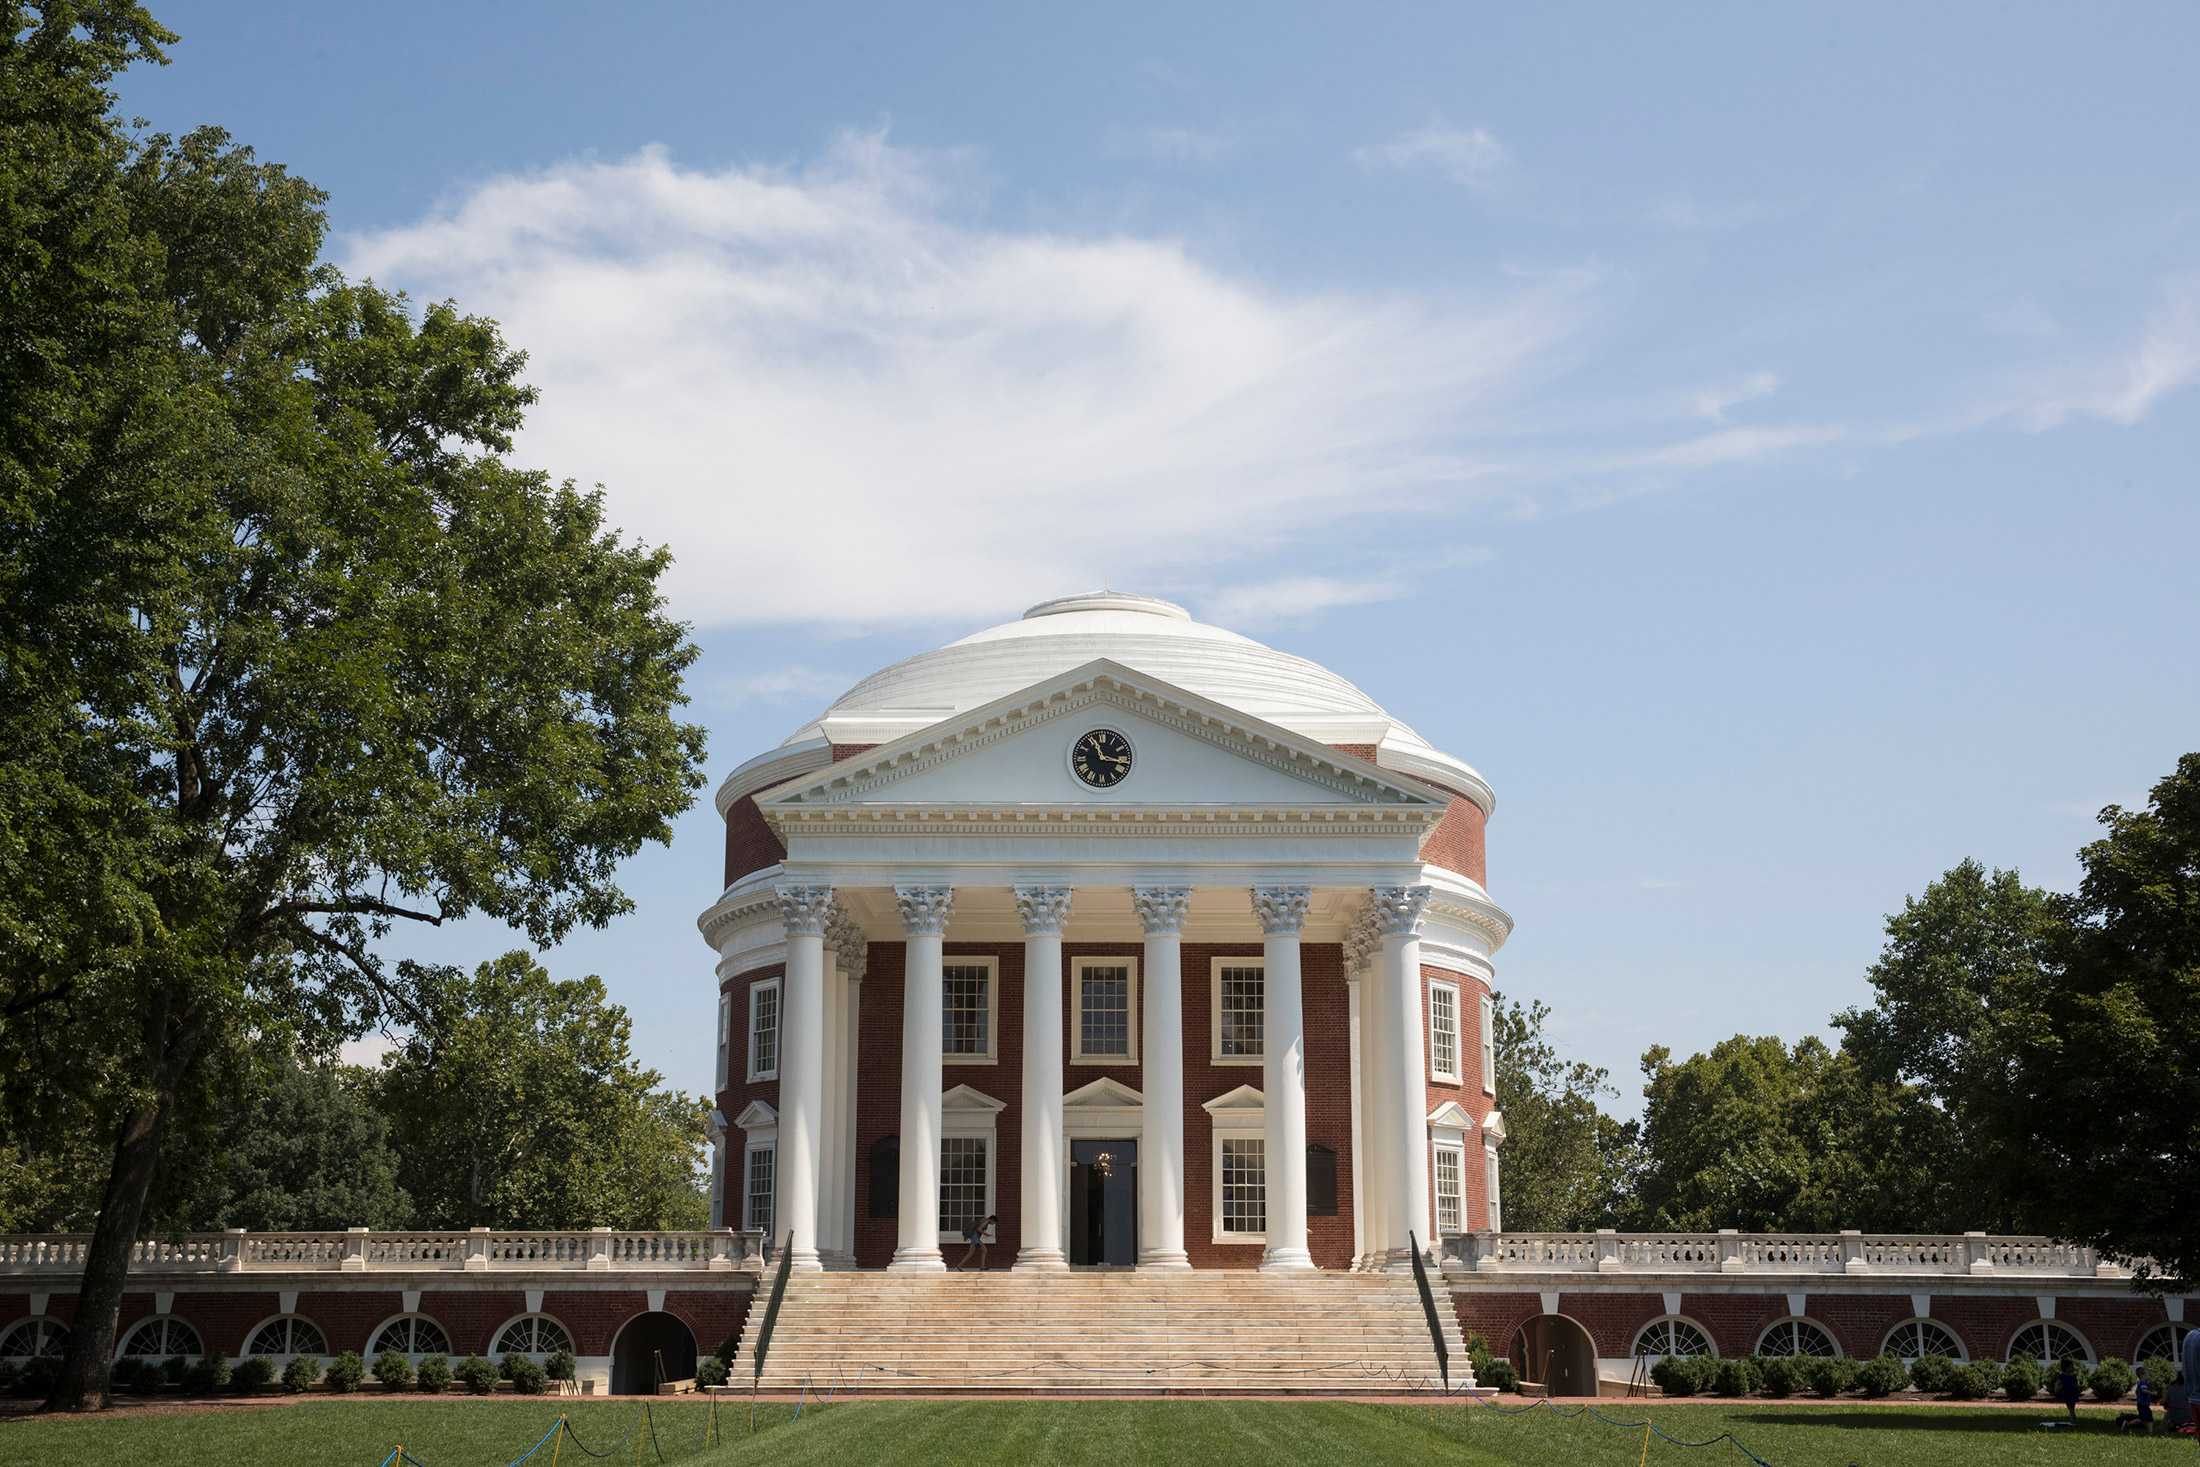 UVA Issues 10 Trespass Warnings to Individuals Involved in August 2017 Violence